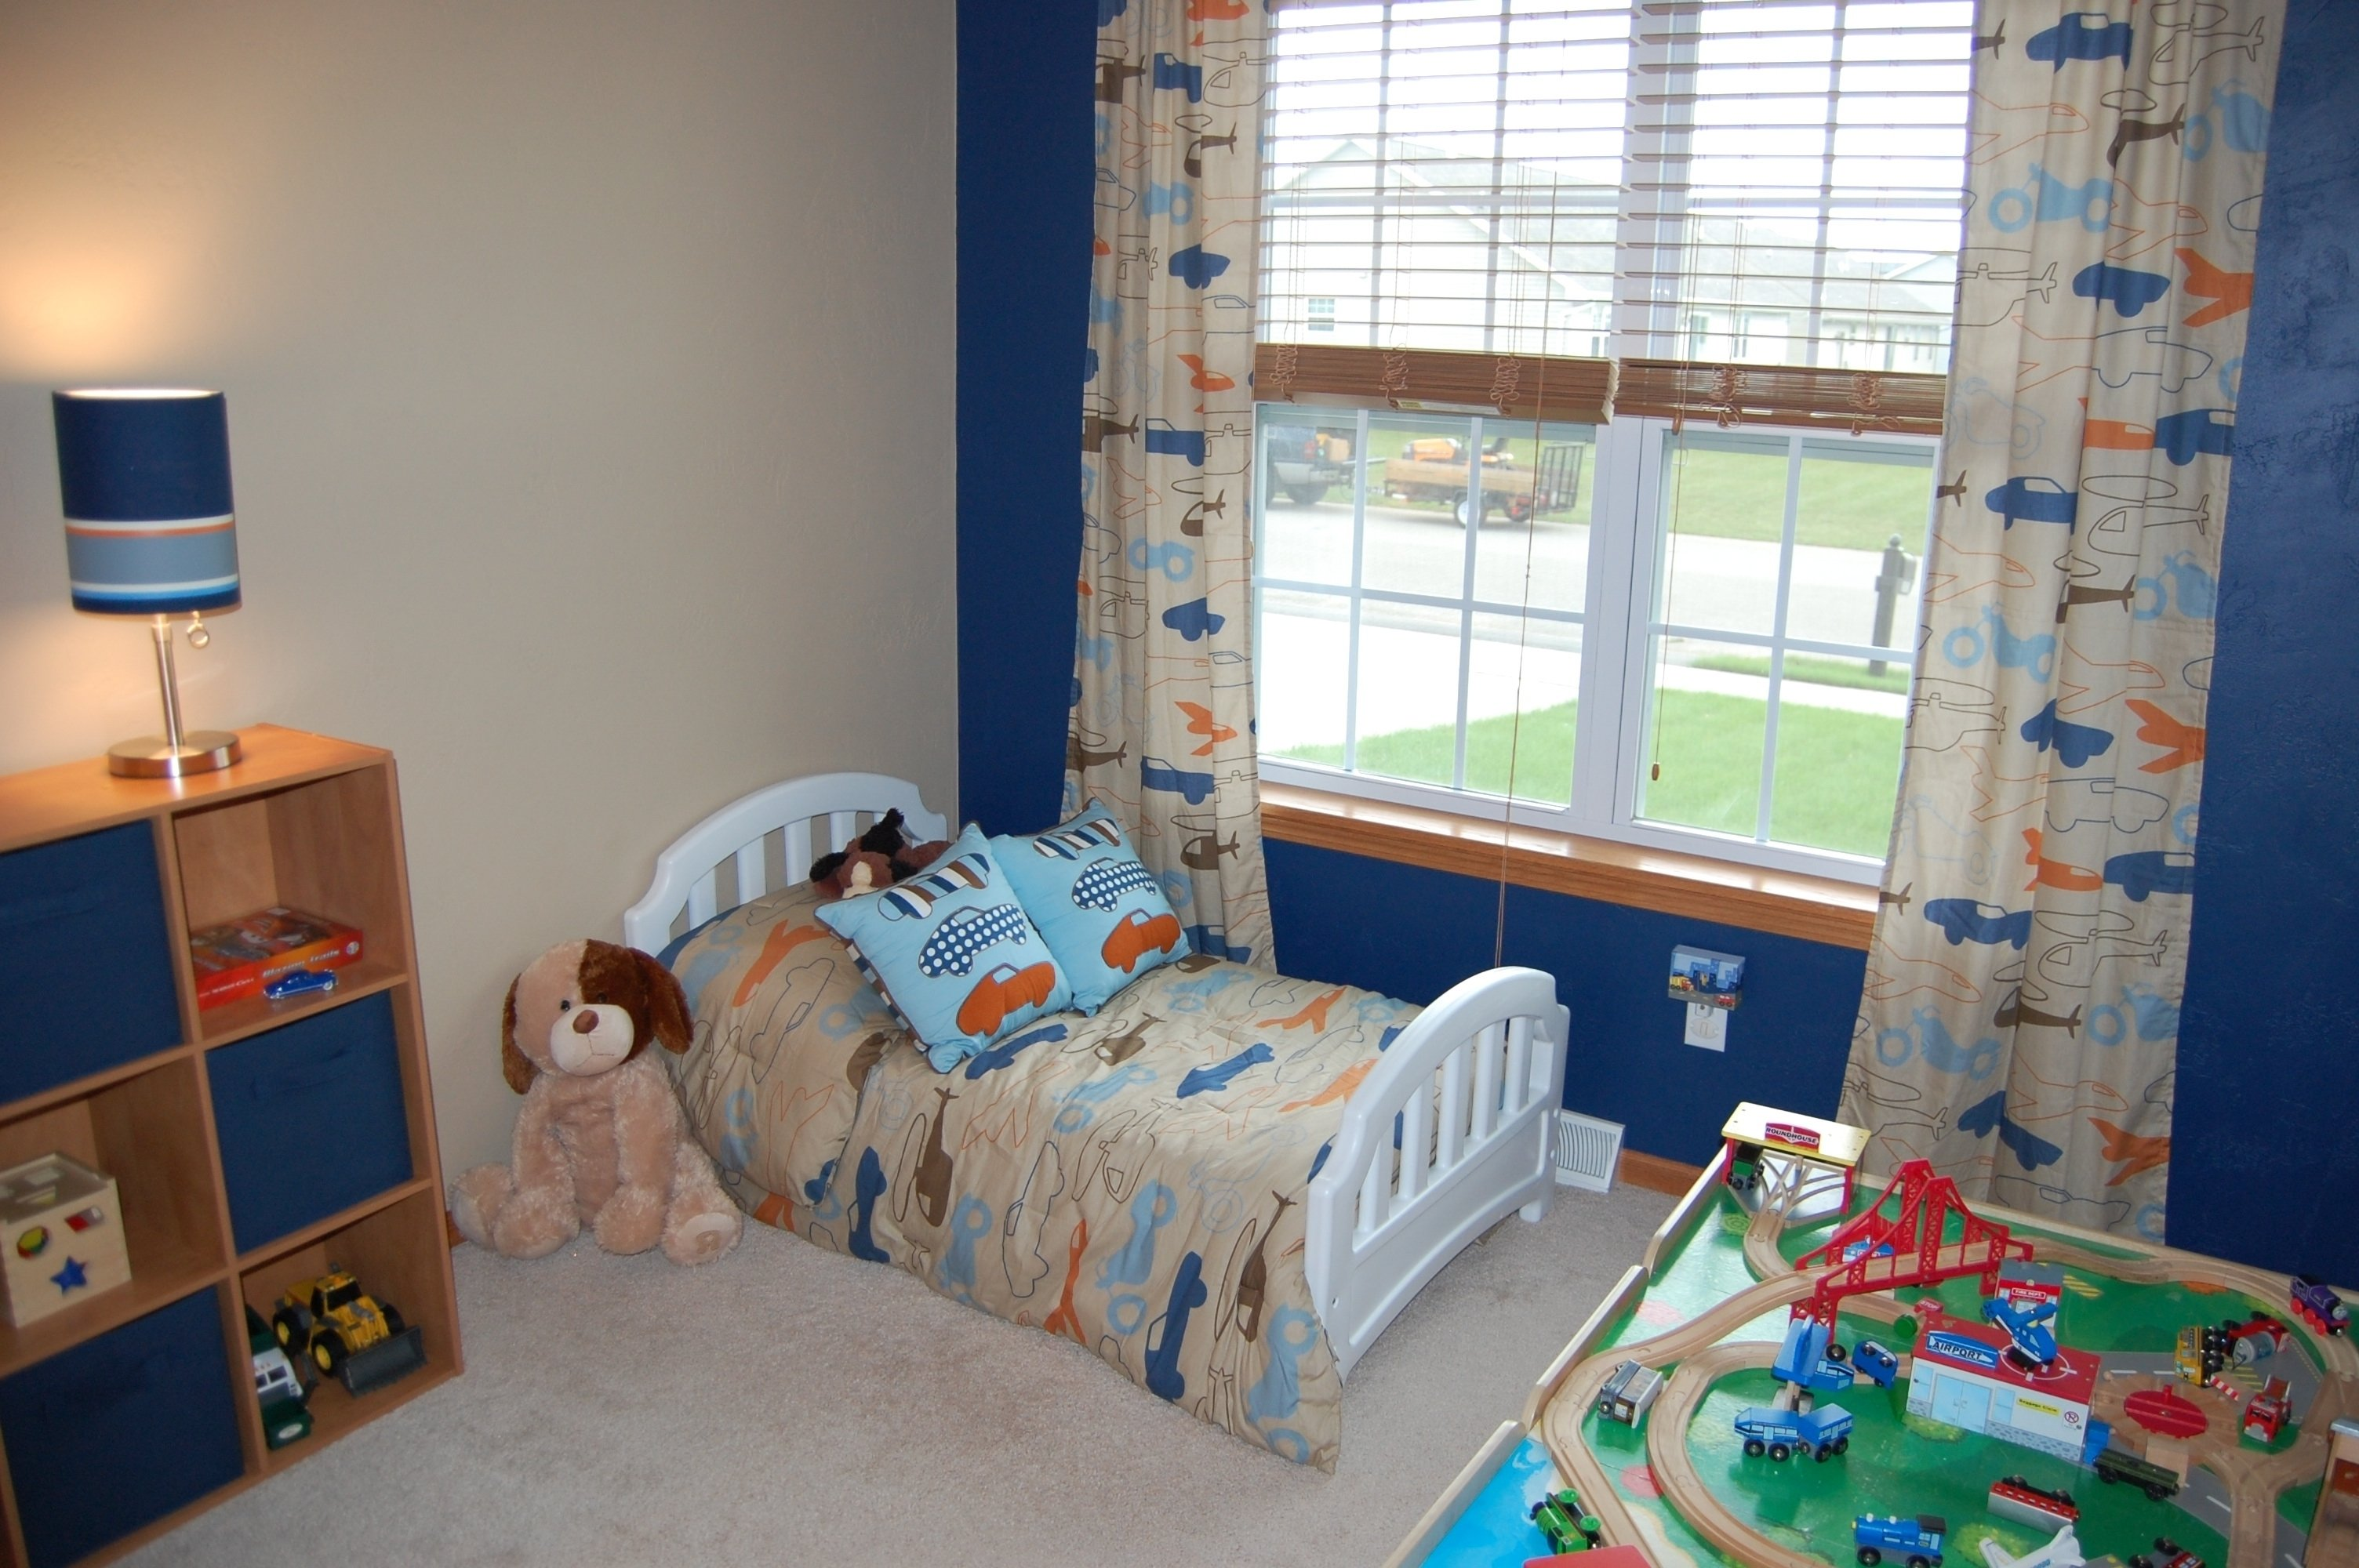 10 Nice Toddler Boy Room Decorating Ideas little boys bedroom ideas toddler boy room decorating ideas home 2020